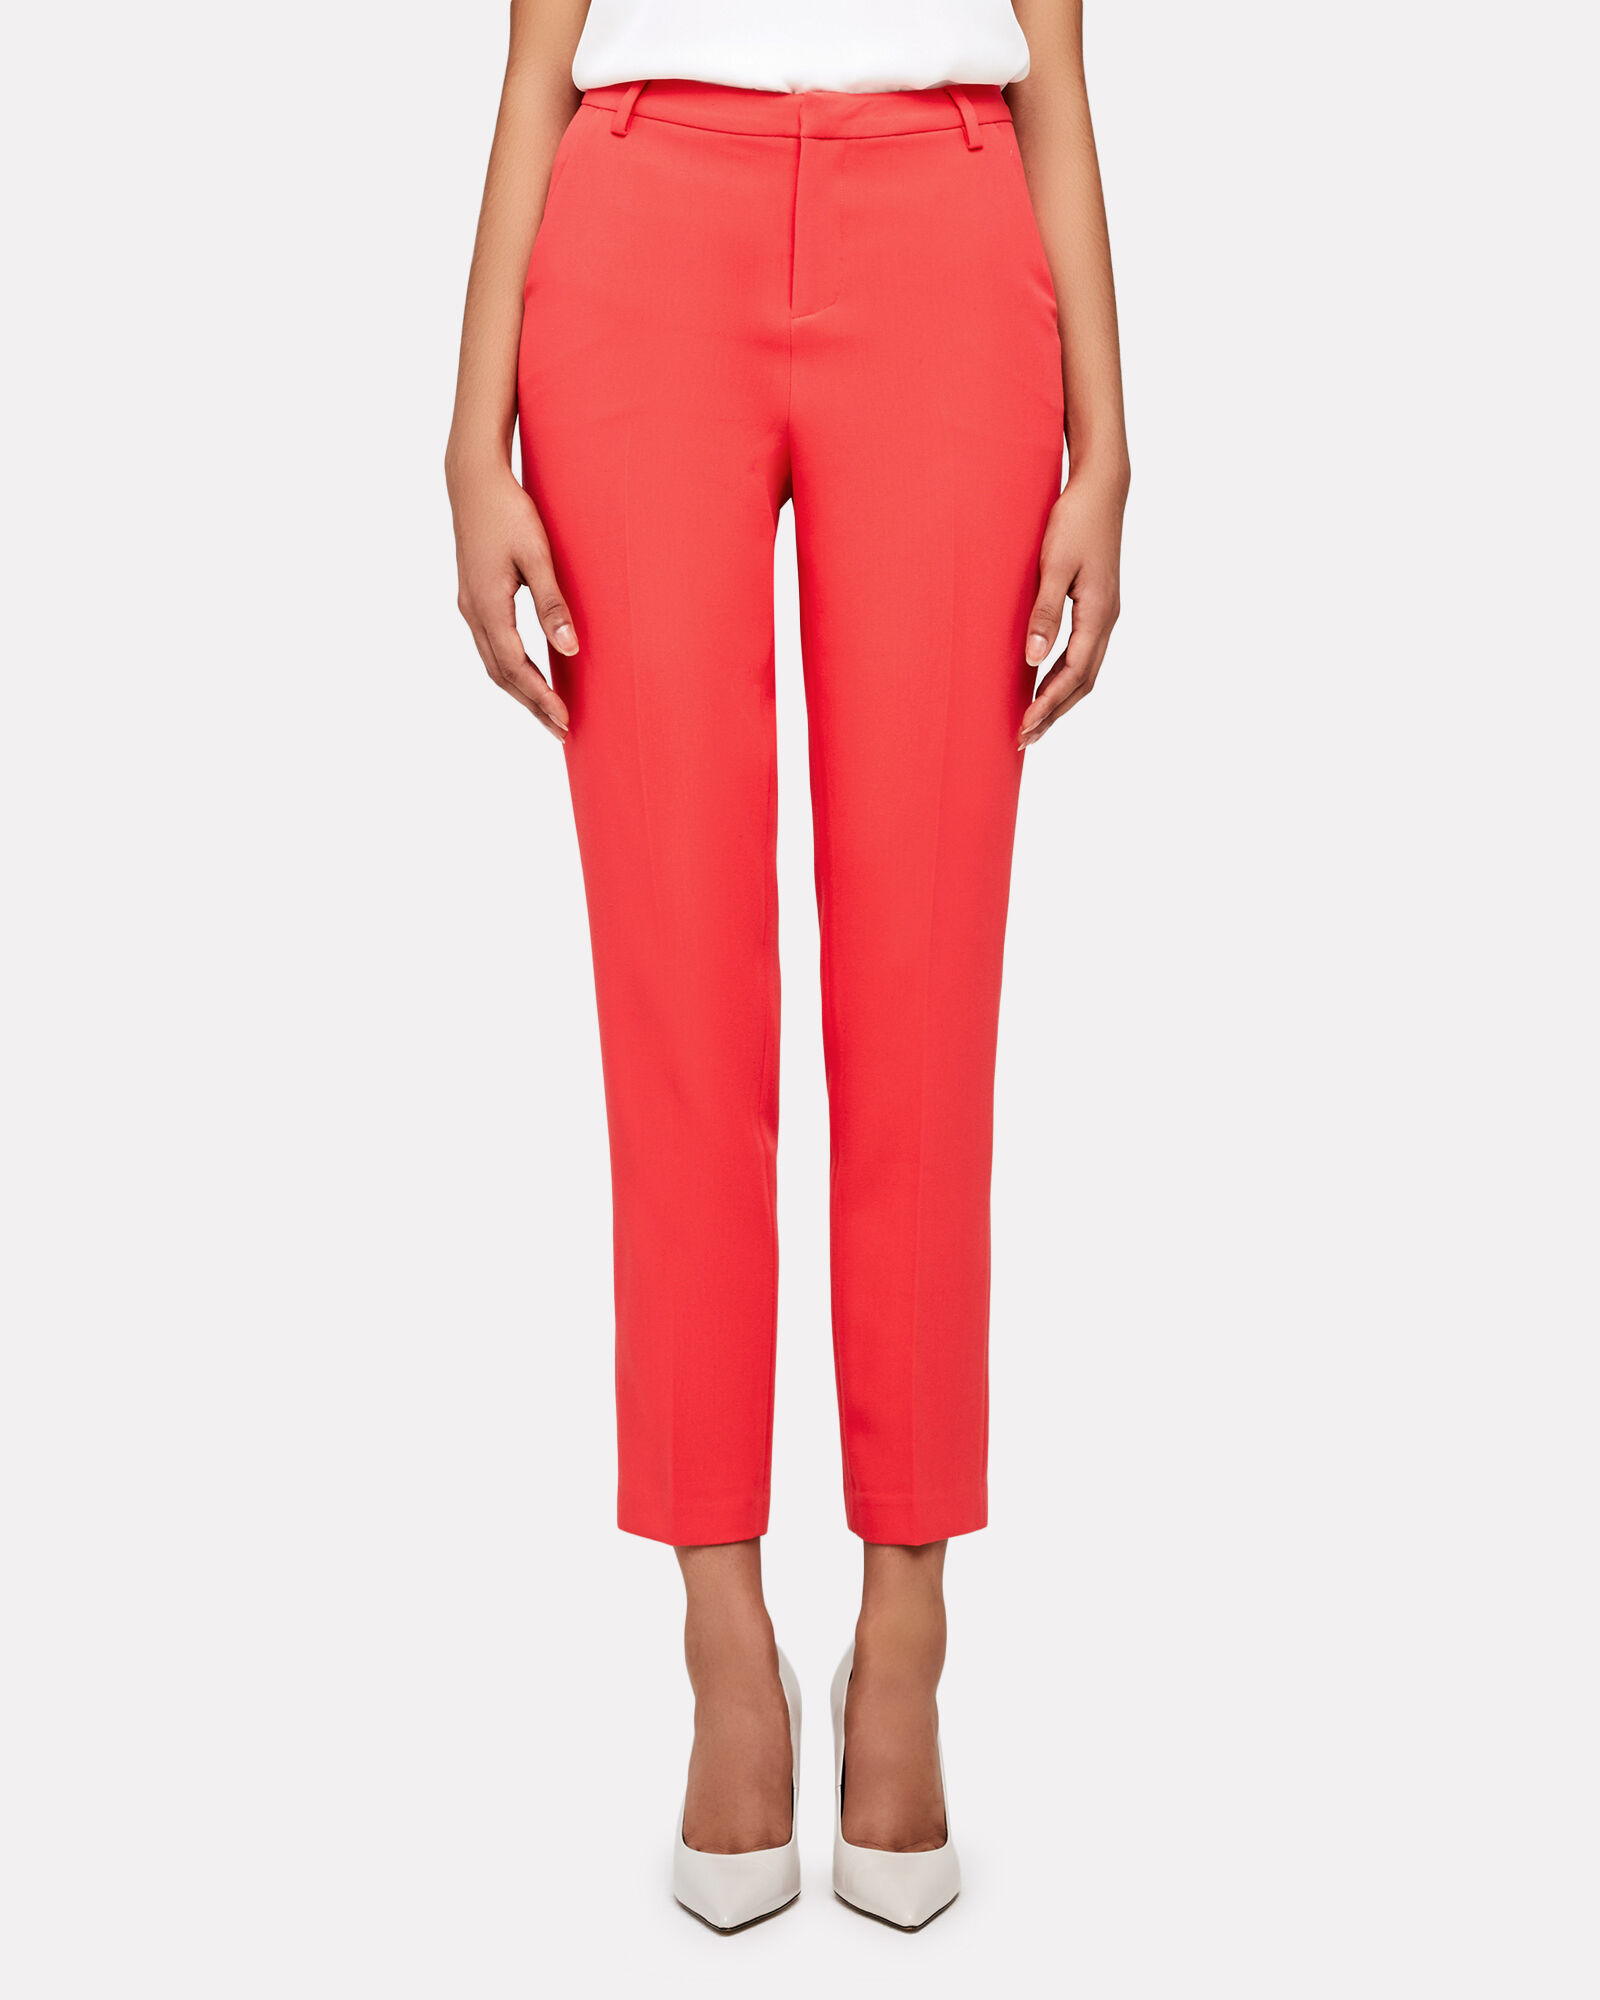 Eleanor Tailored High-Rise Pants, RED, hi-res